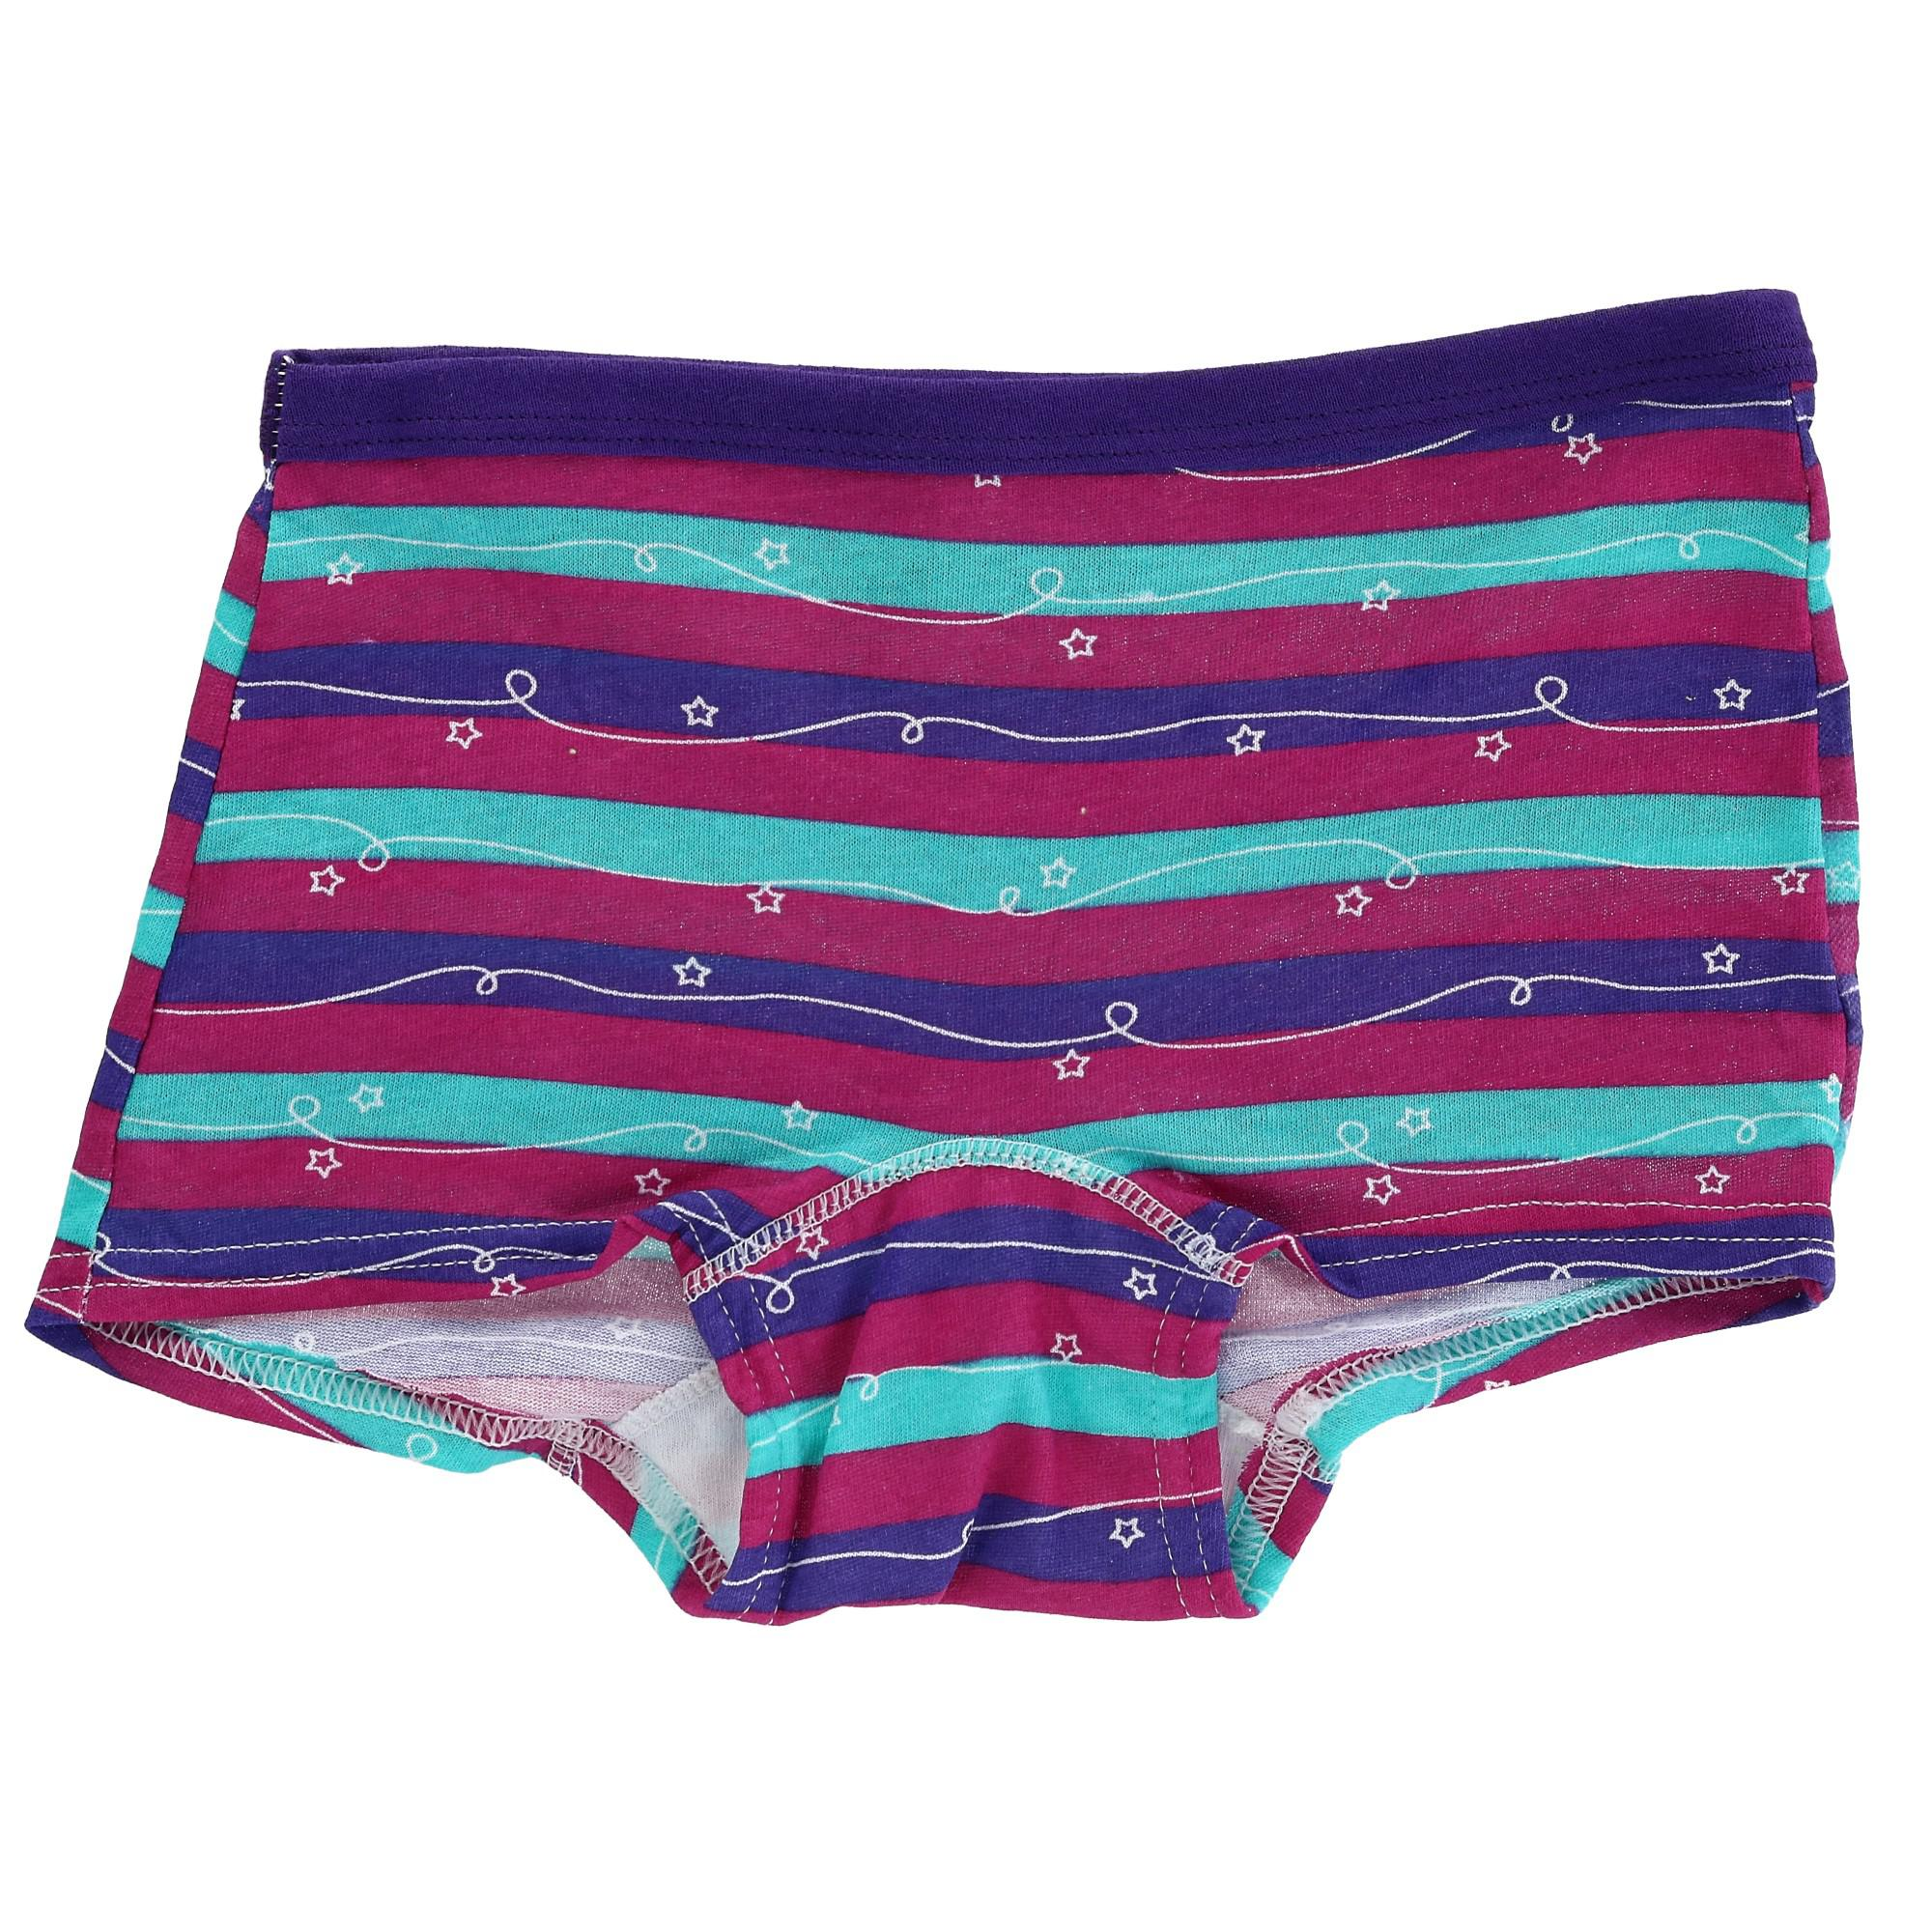 4d56c7d1f Details about New Fruit of the Loom Girl s Boy Short Underwear (8 Pair Pack)